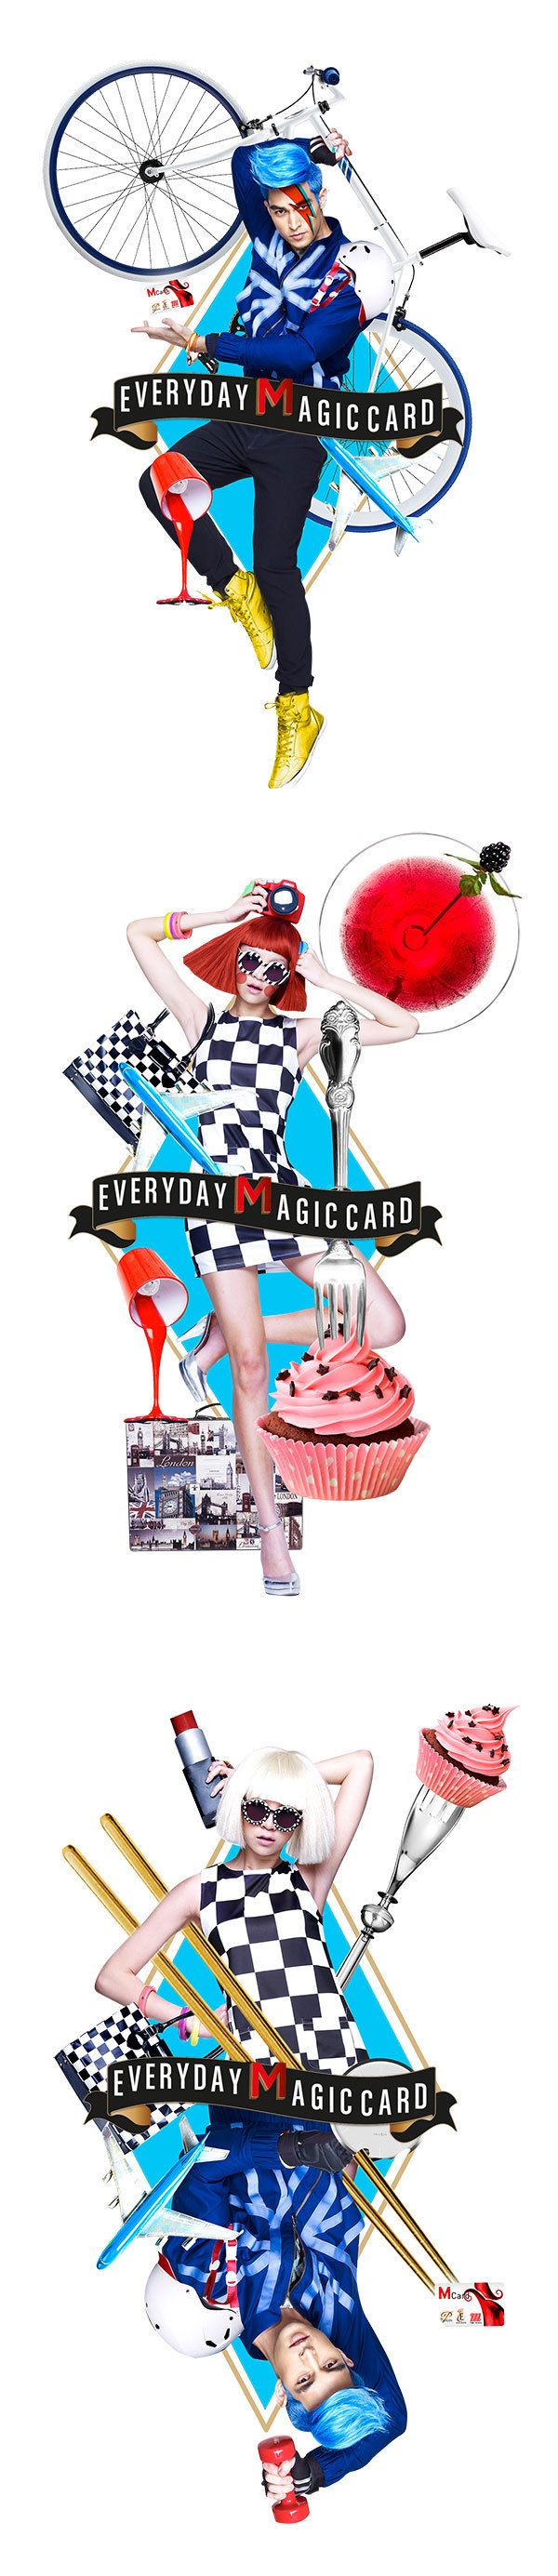 M Card Privileges | Fabulous Friday by Dragon Ink, via Behance